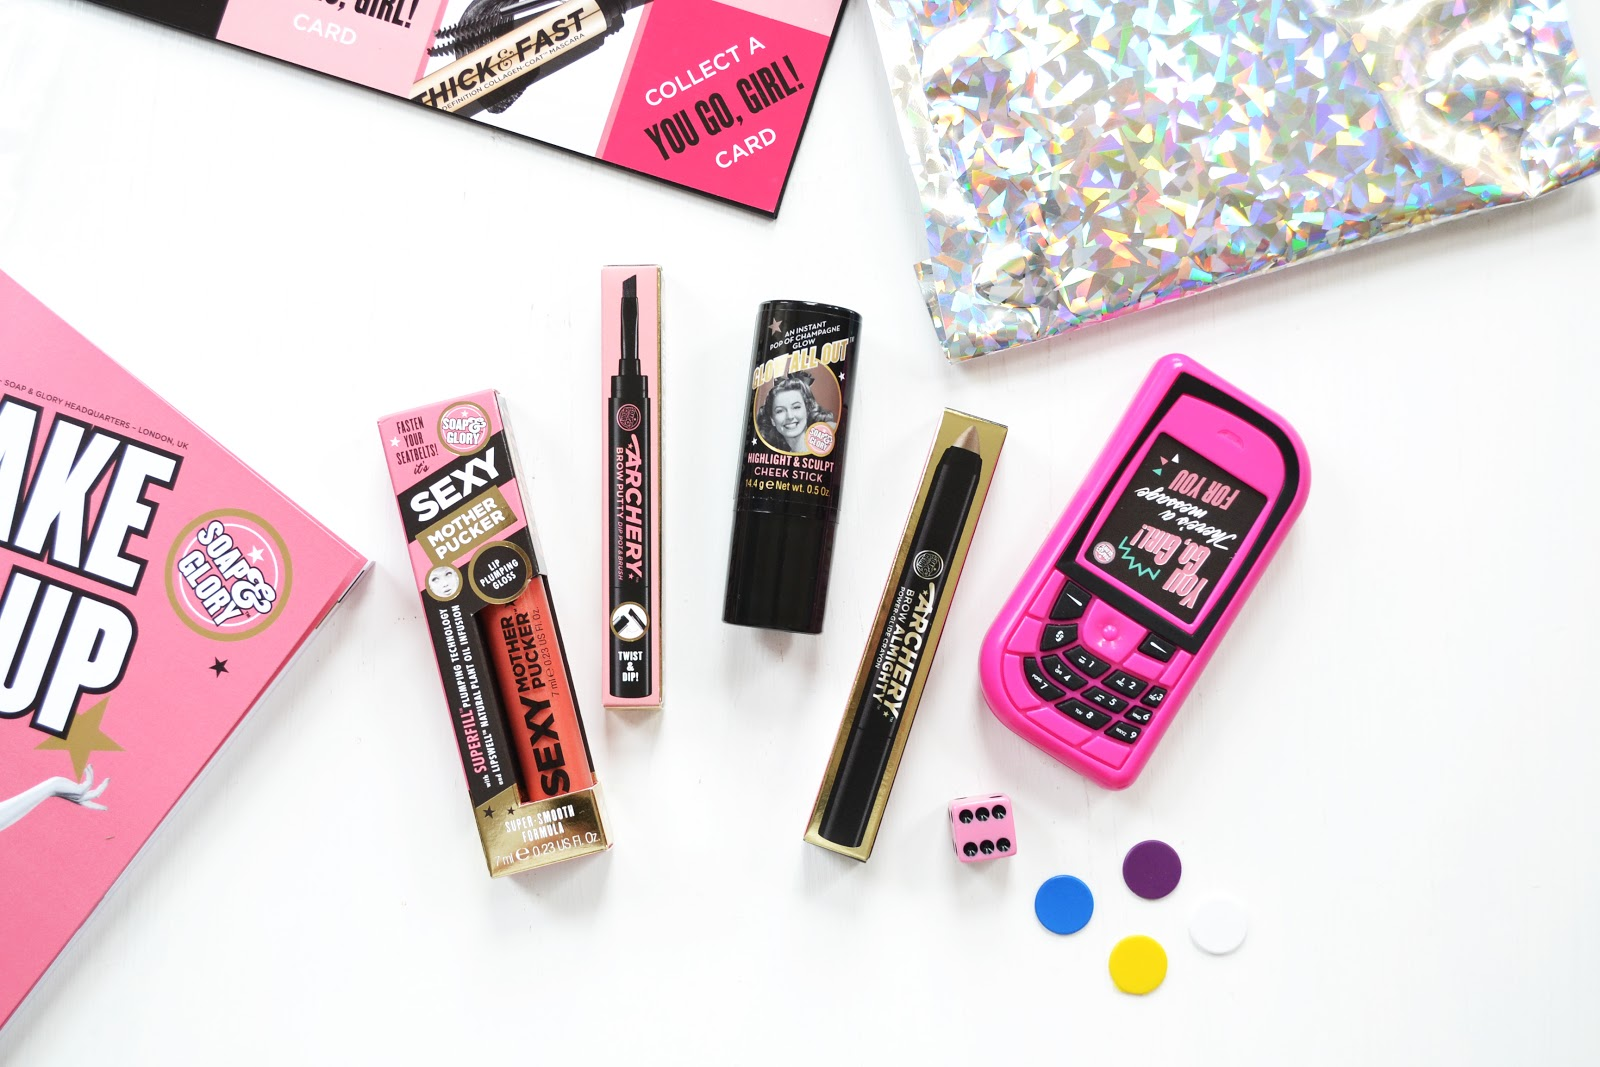 soap and glory make up cosmetics